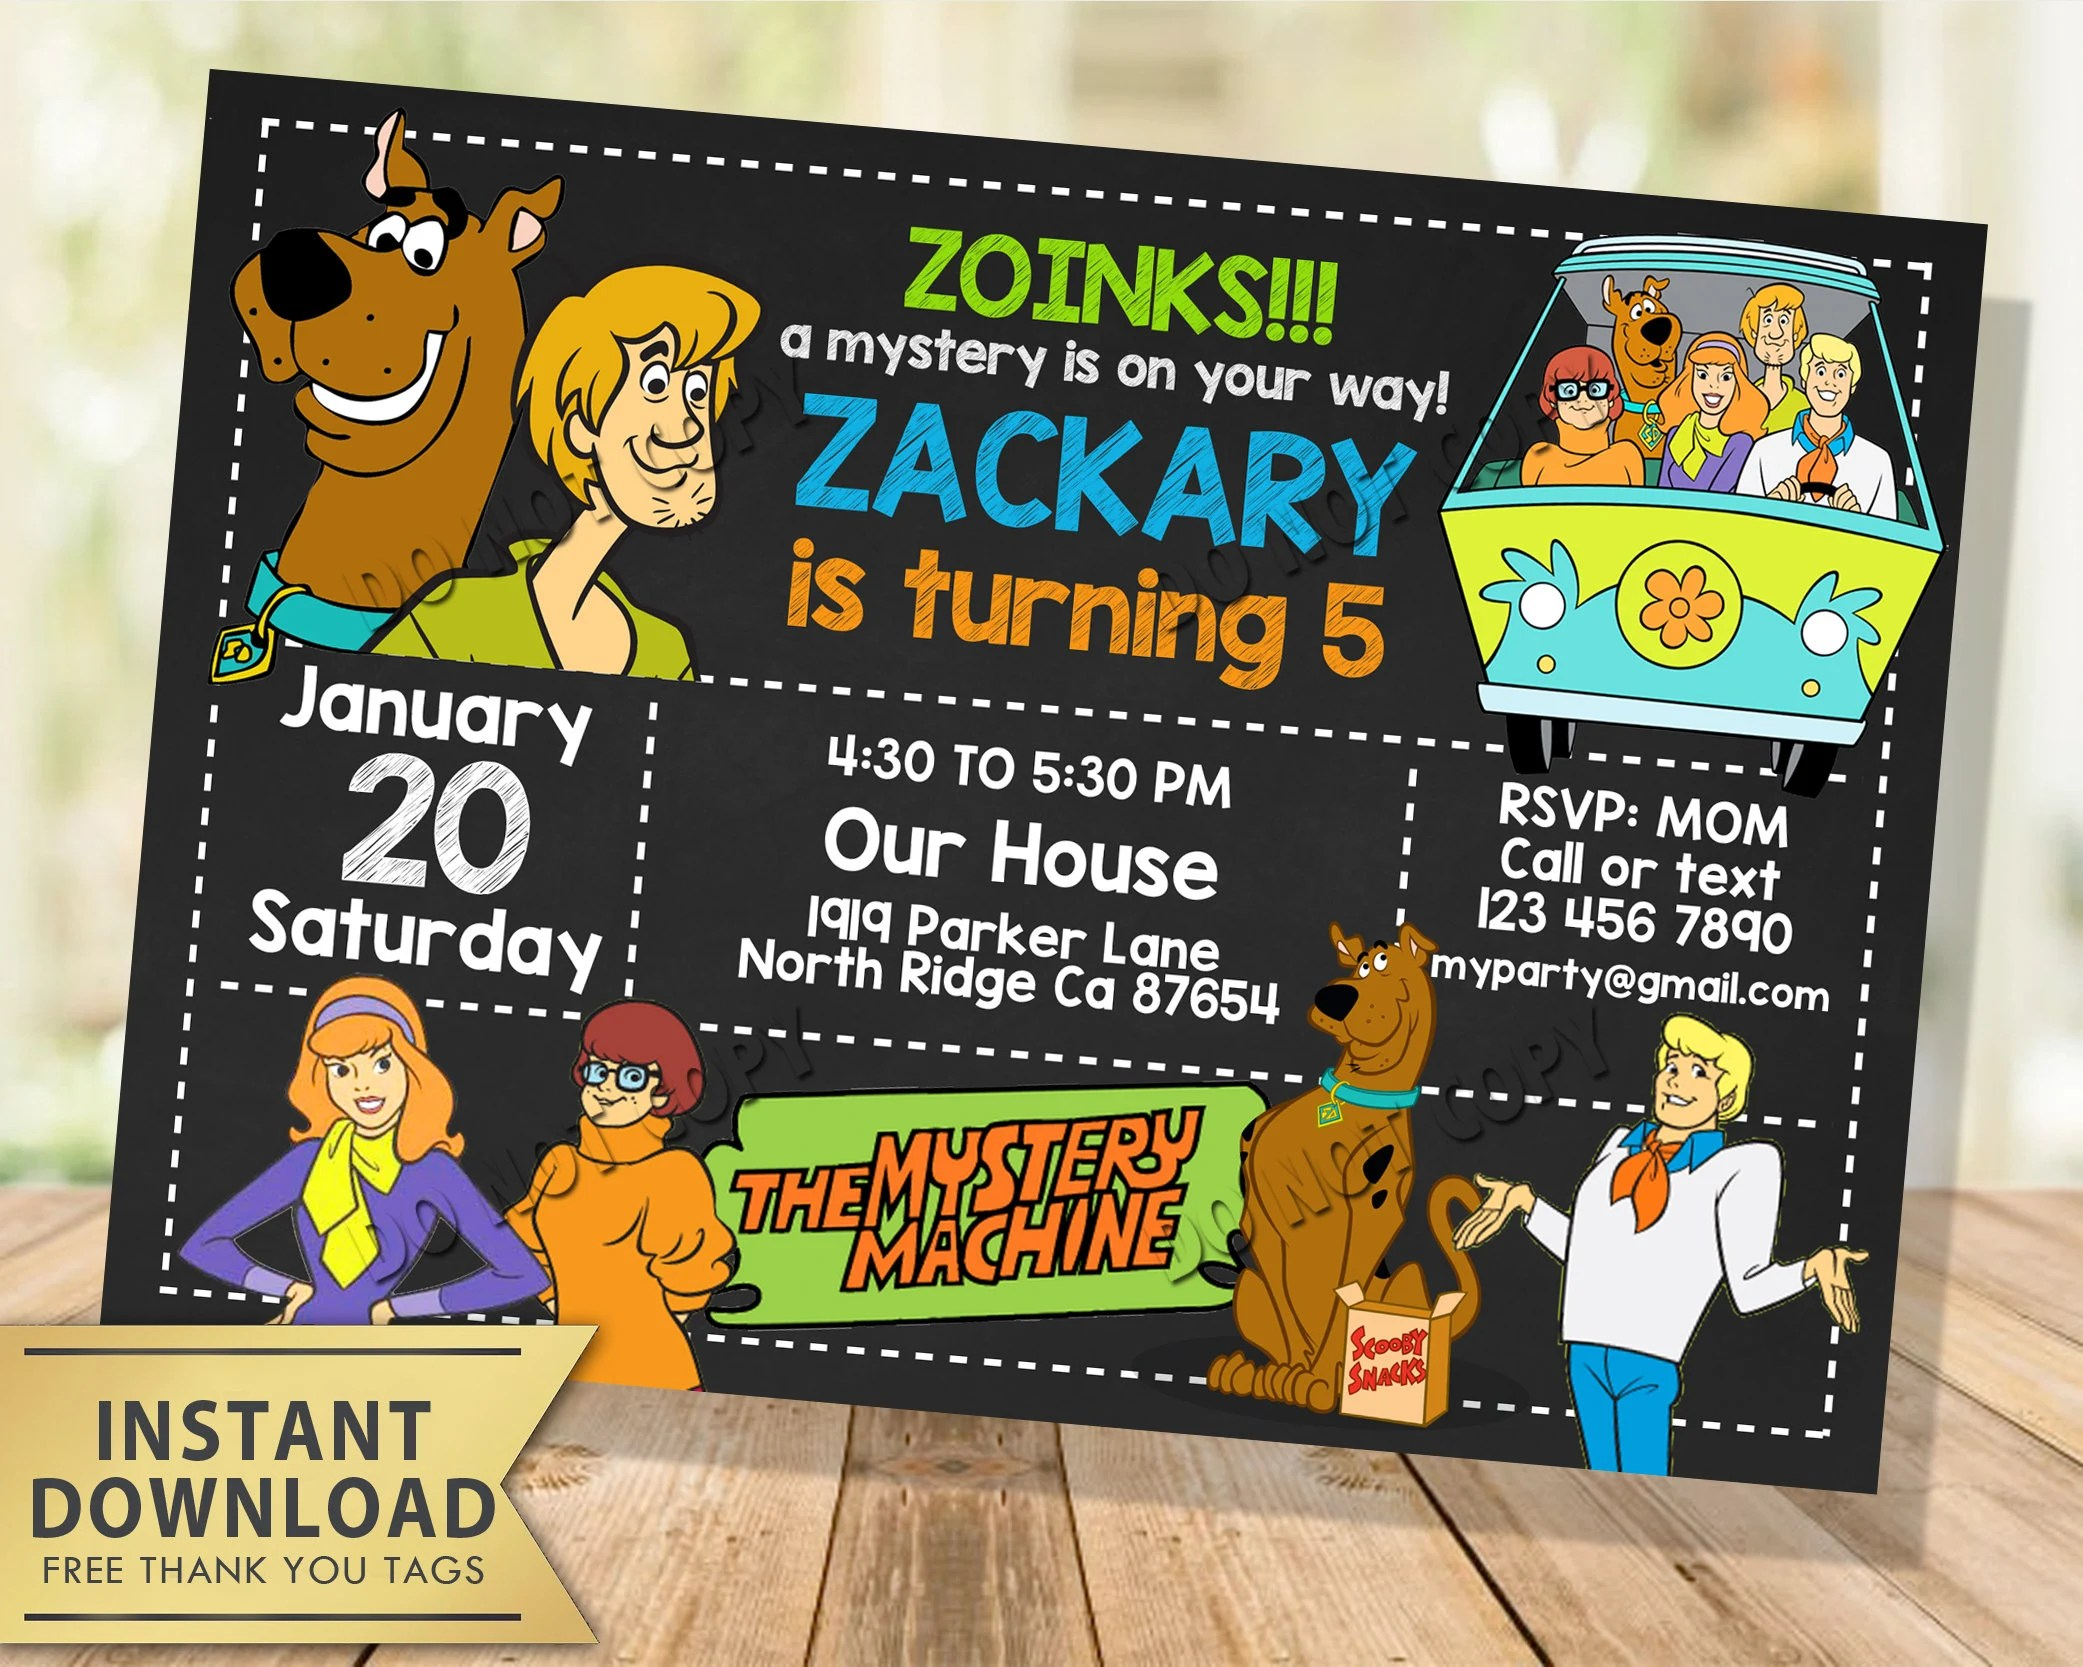 scooby doo invitation instant download scooby doo birthday invitation chalkboard scooby doo invite evite editable scooby invitation pdf